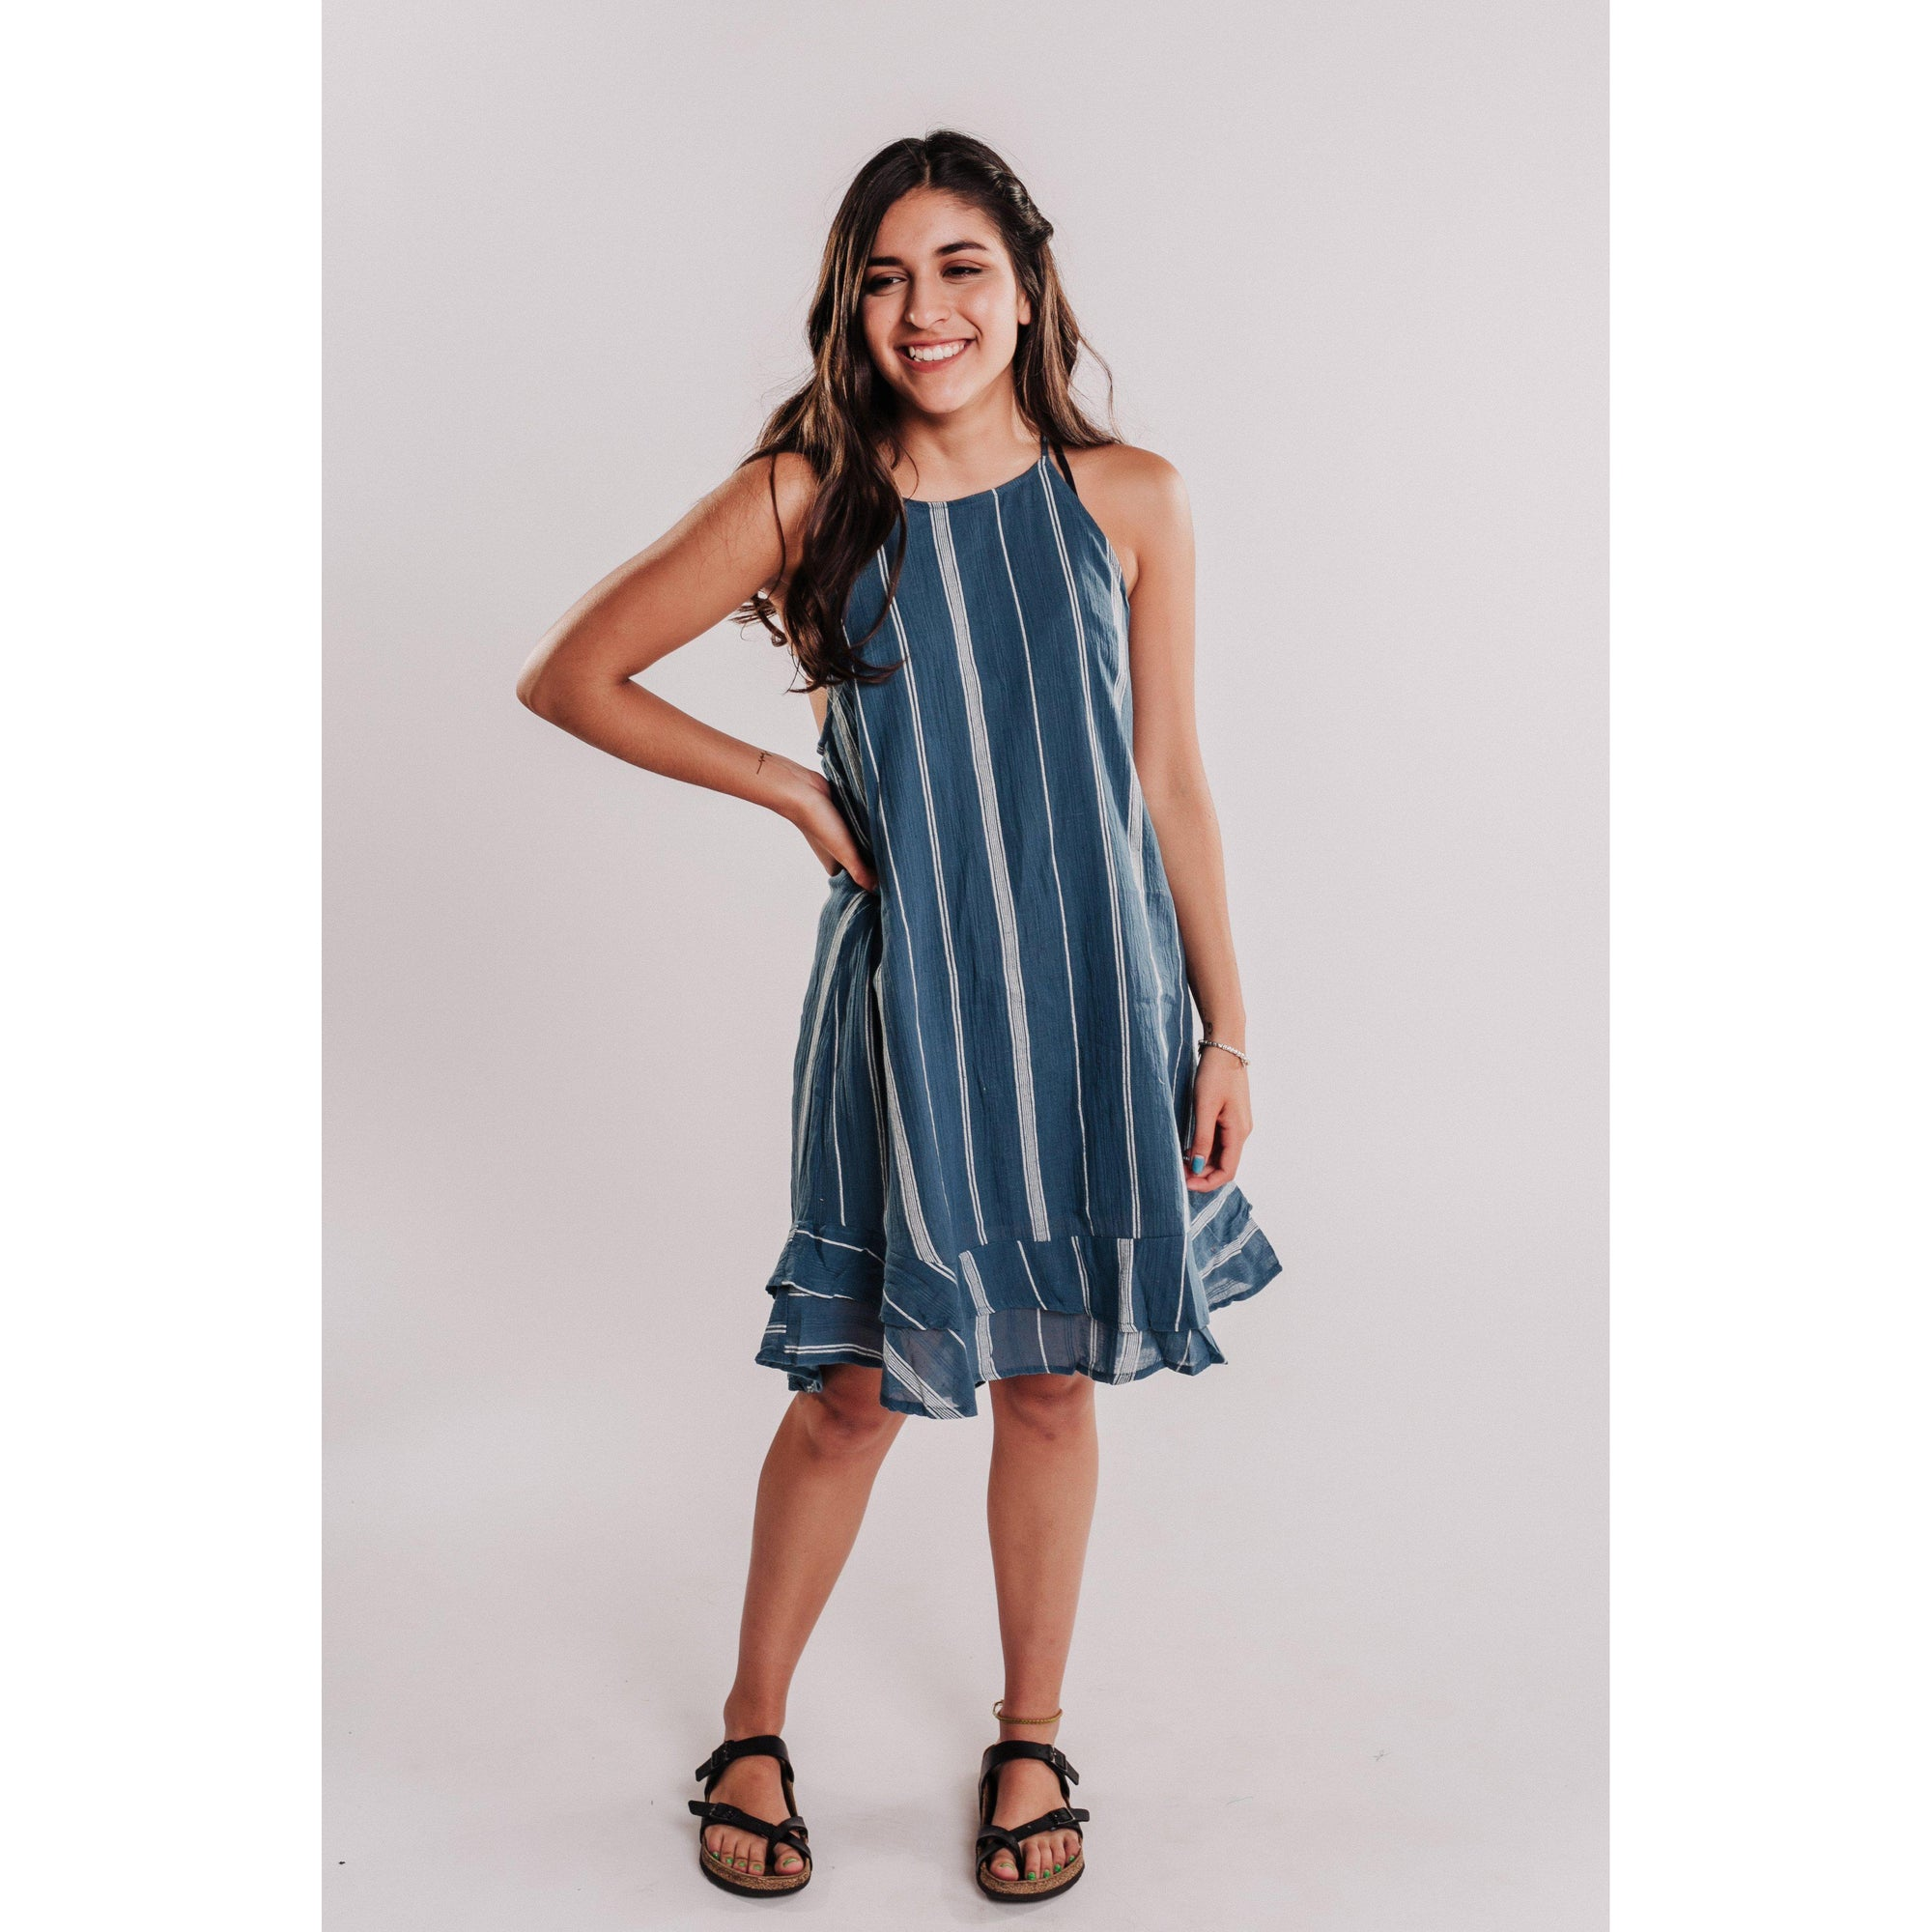 Women's Striped Halter Dress With Ruffle Hem - Denim-OneTrail Gear